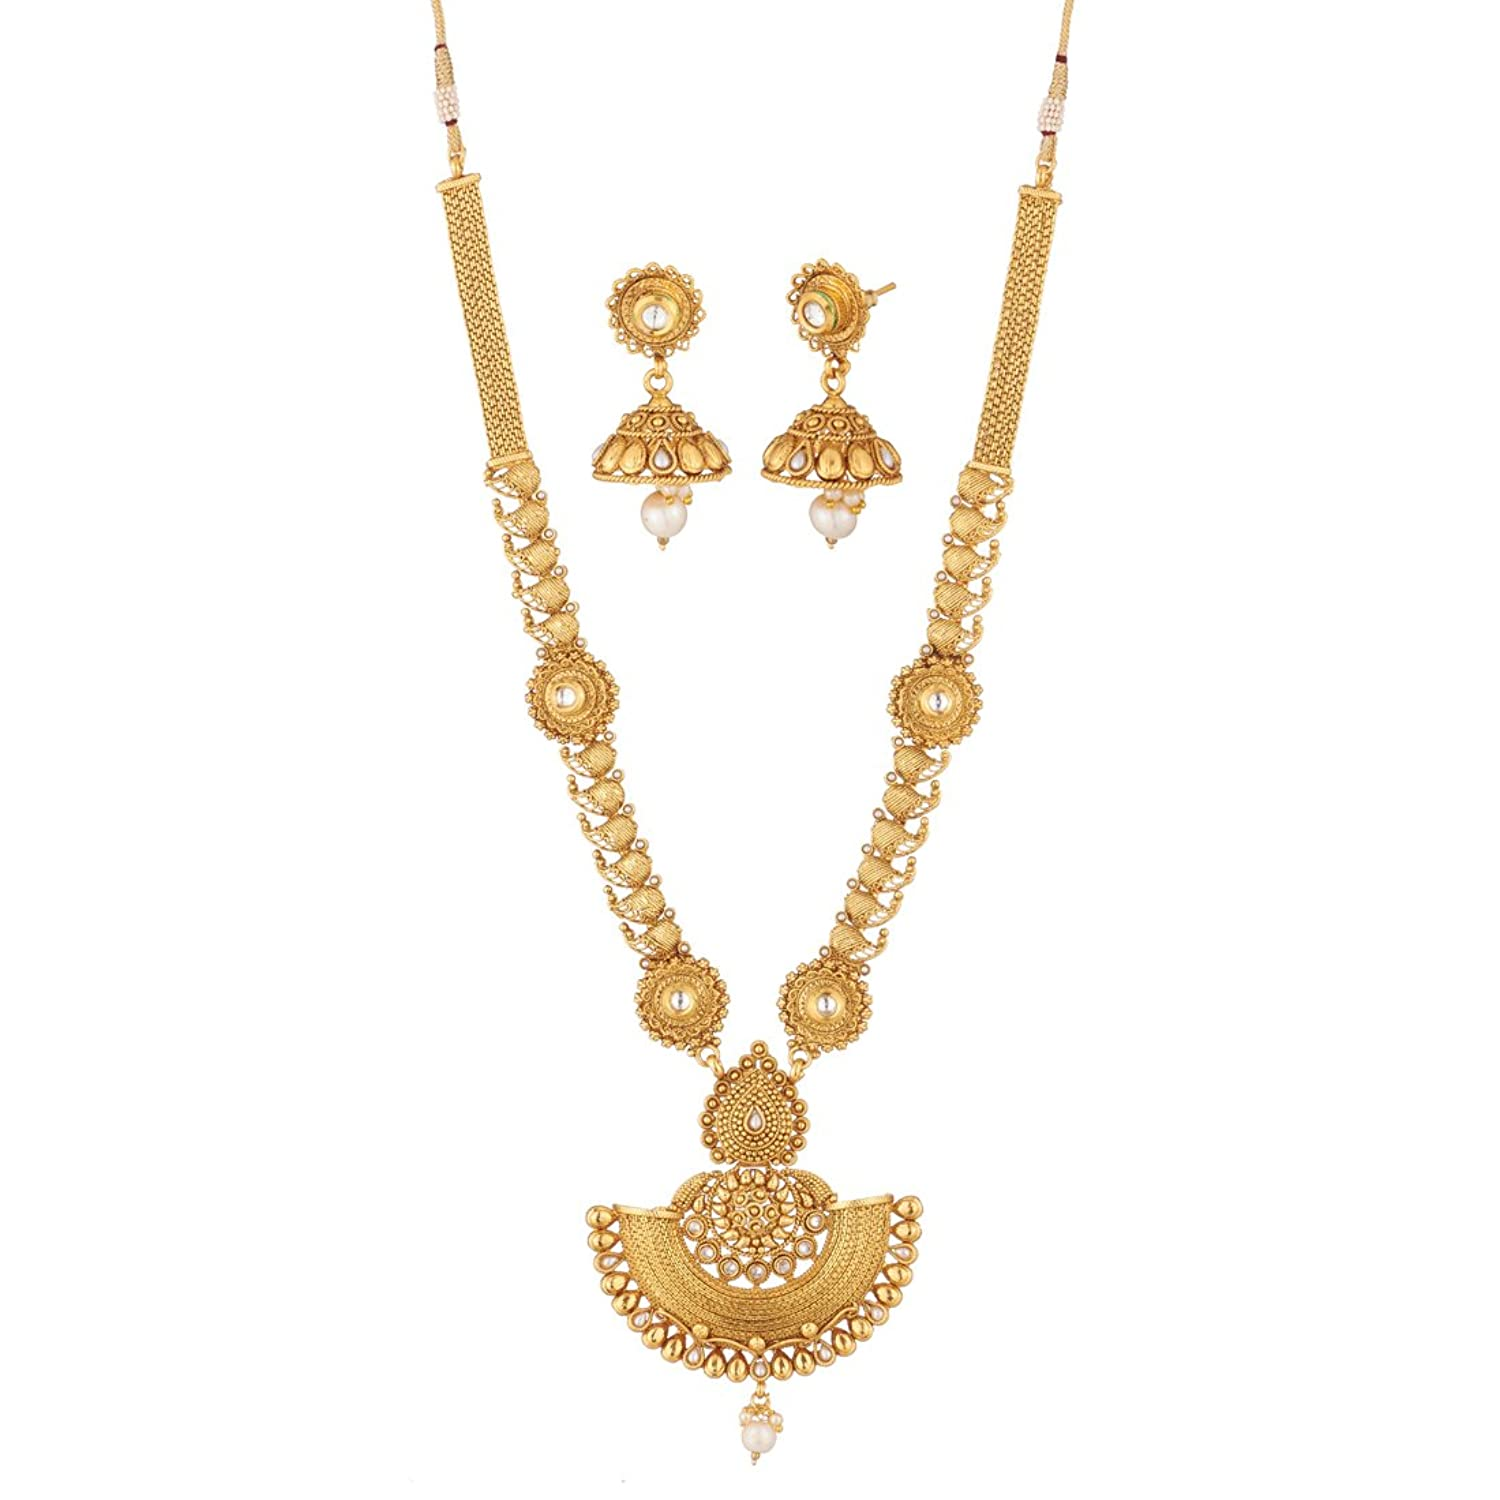 jewellery mumbai jewellers india design vasupati gold jeweller choice awards indian